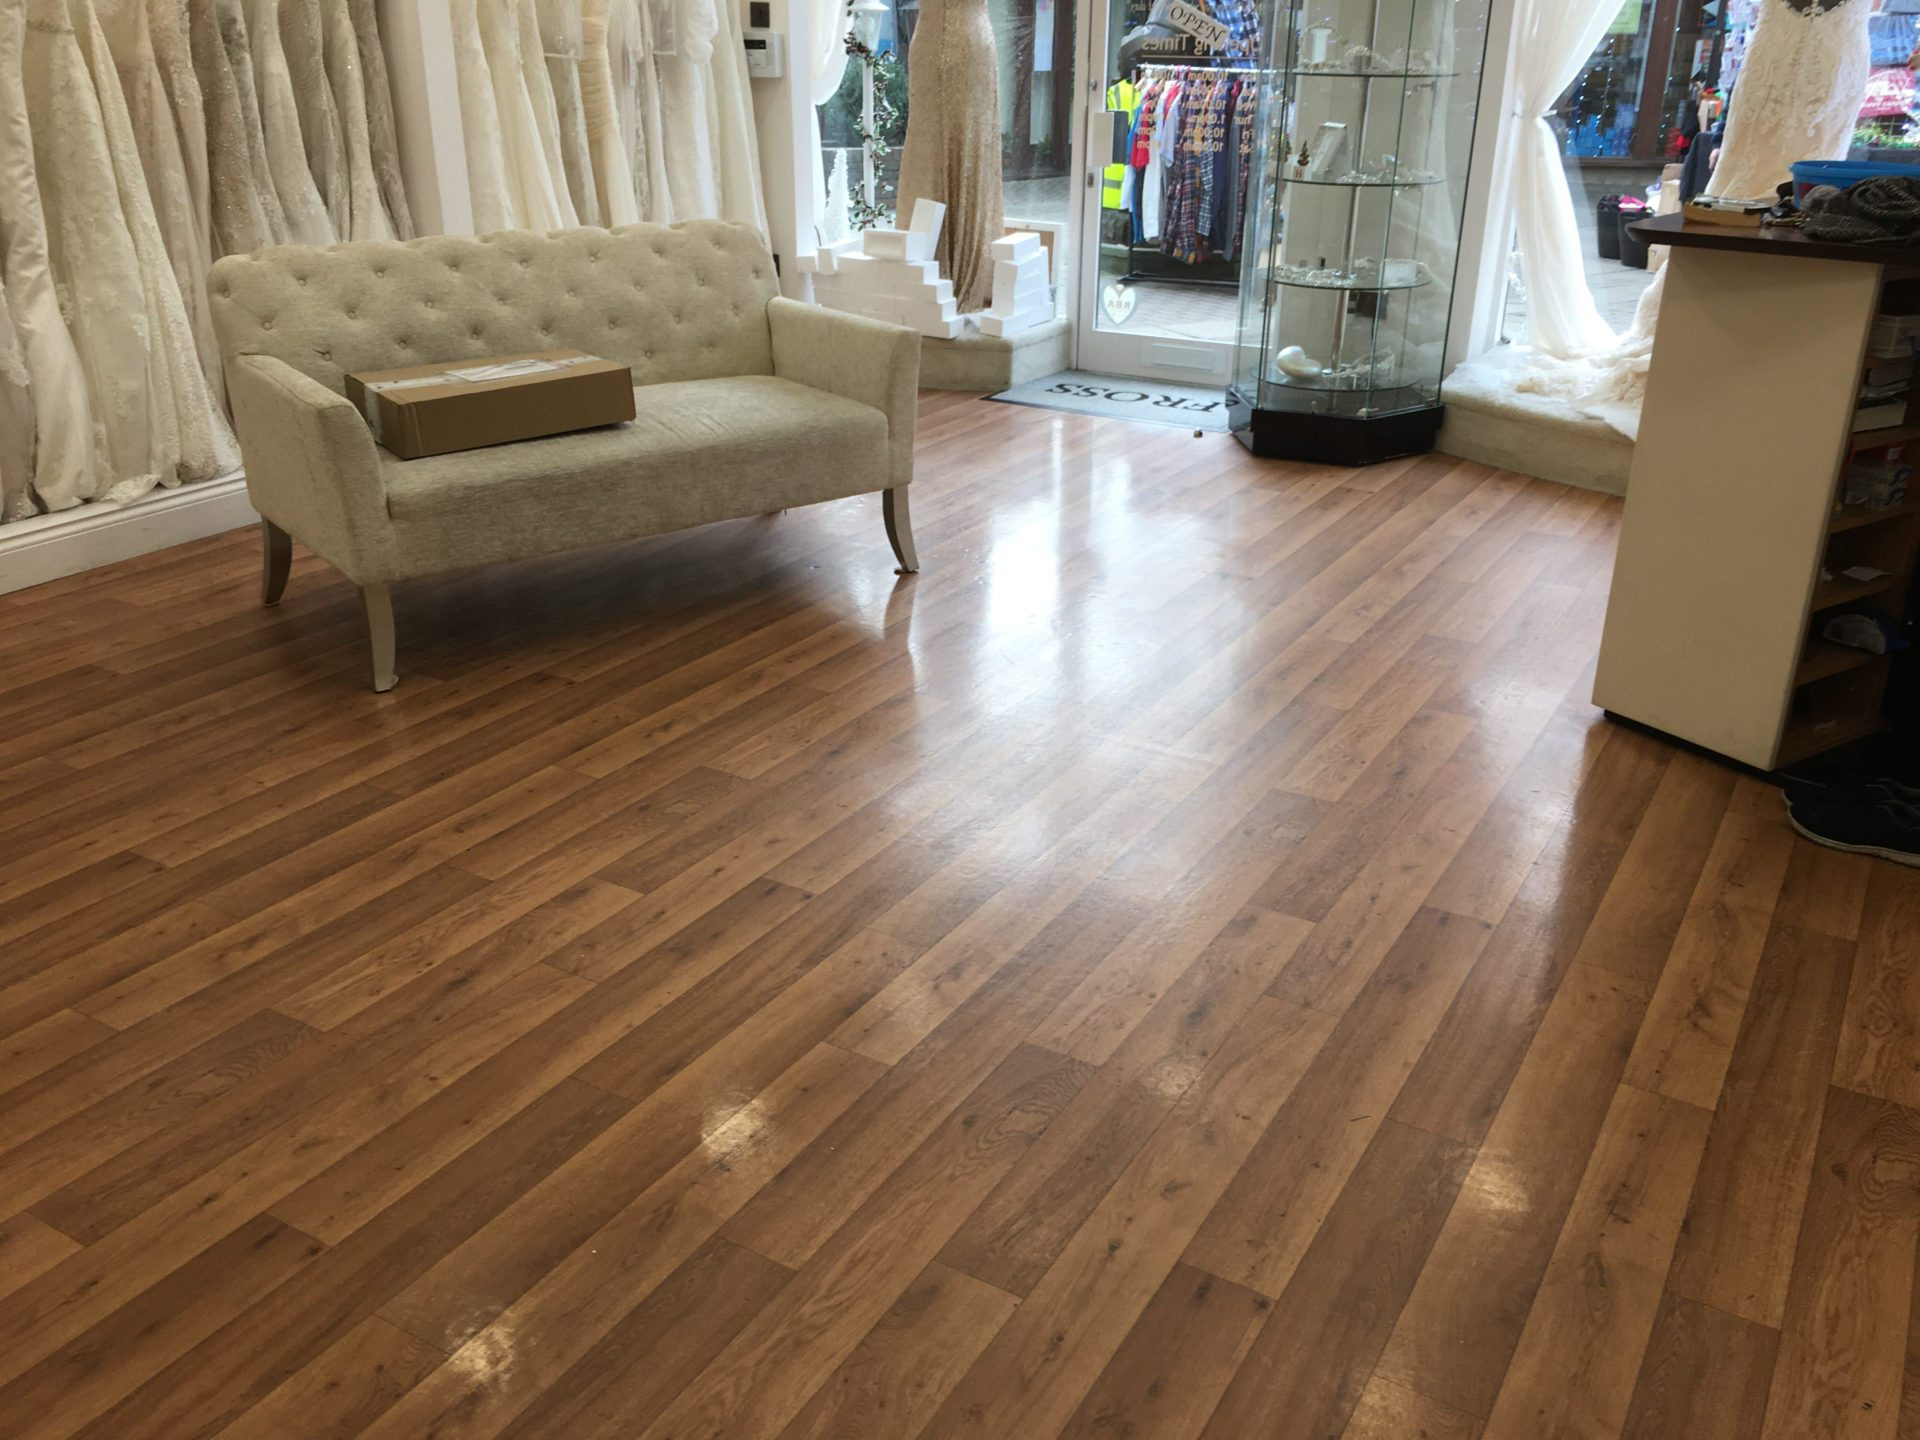 best cleaner for laminate hardwood floors of homemade laminate floor cleaner pin by belat parket on pieter en in homemade laminate floor cleaner laminate flooring laminate floor cleaner machine best way to clean